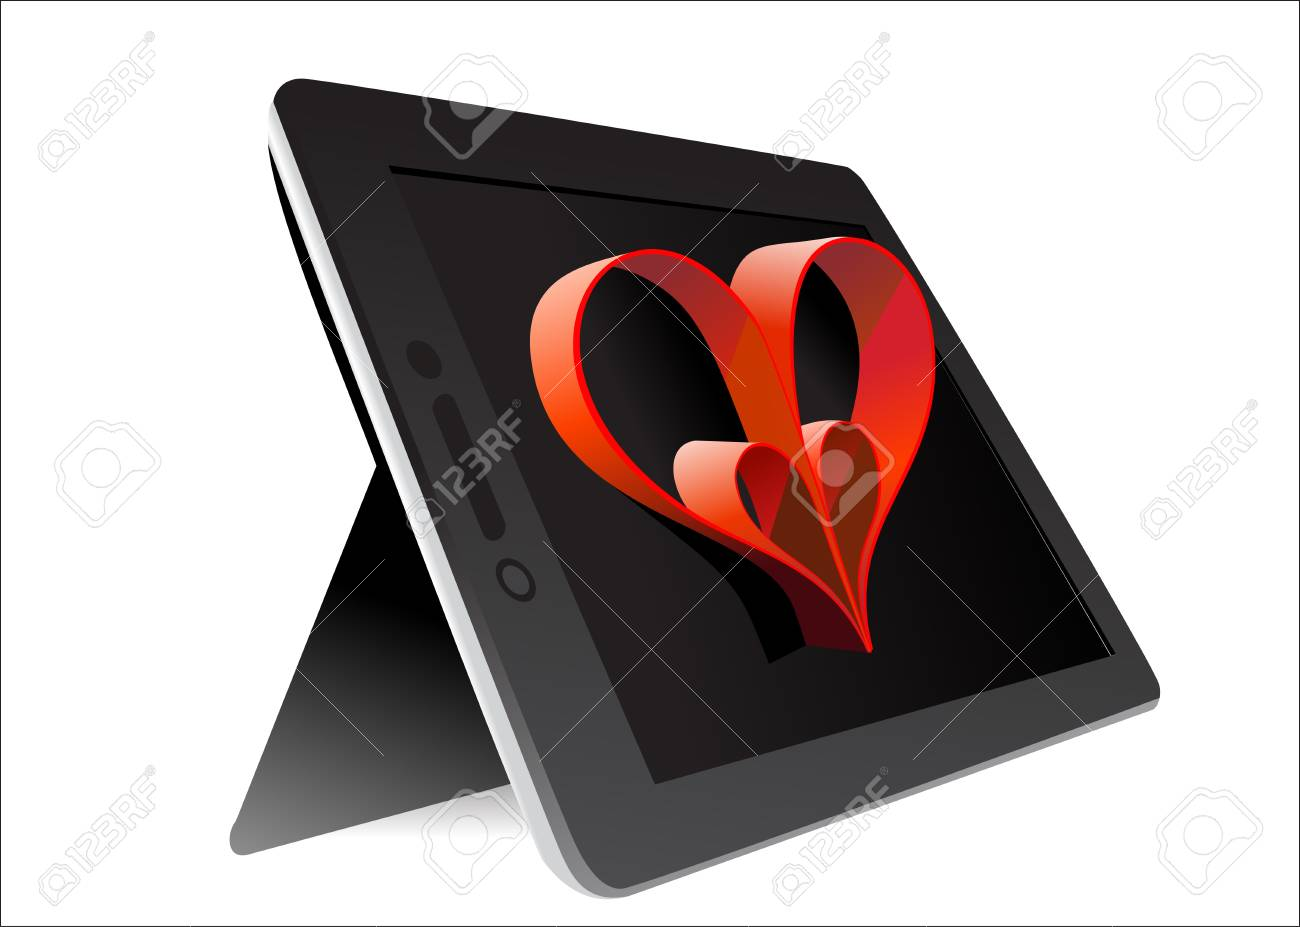 Valentine s Day Concept  Tablet PC Isolated on White Background  Vector Stock Vector - 17483844